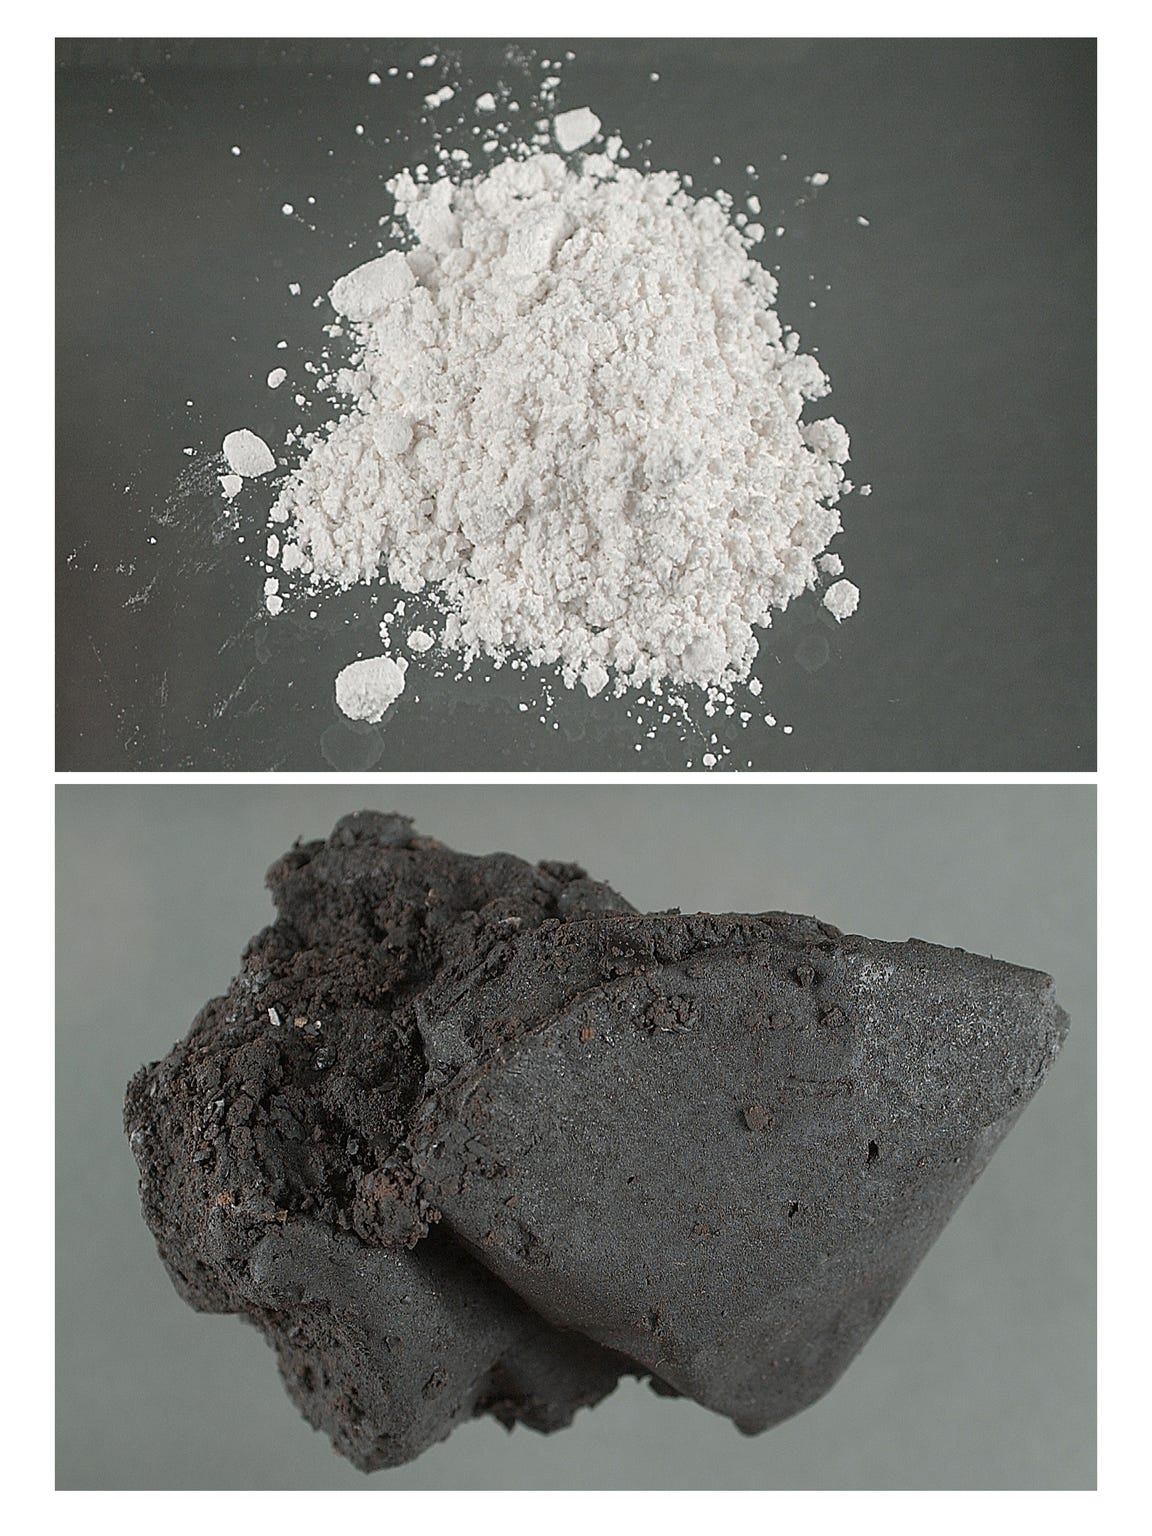 This composite image shows white powder heroin, top,